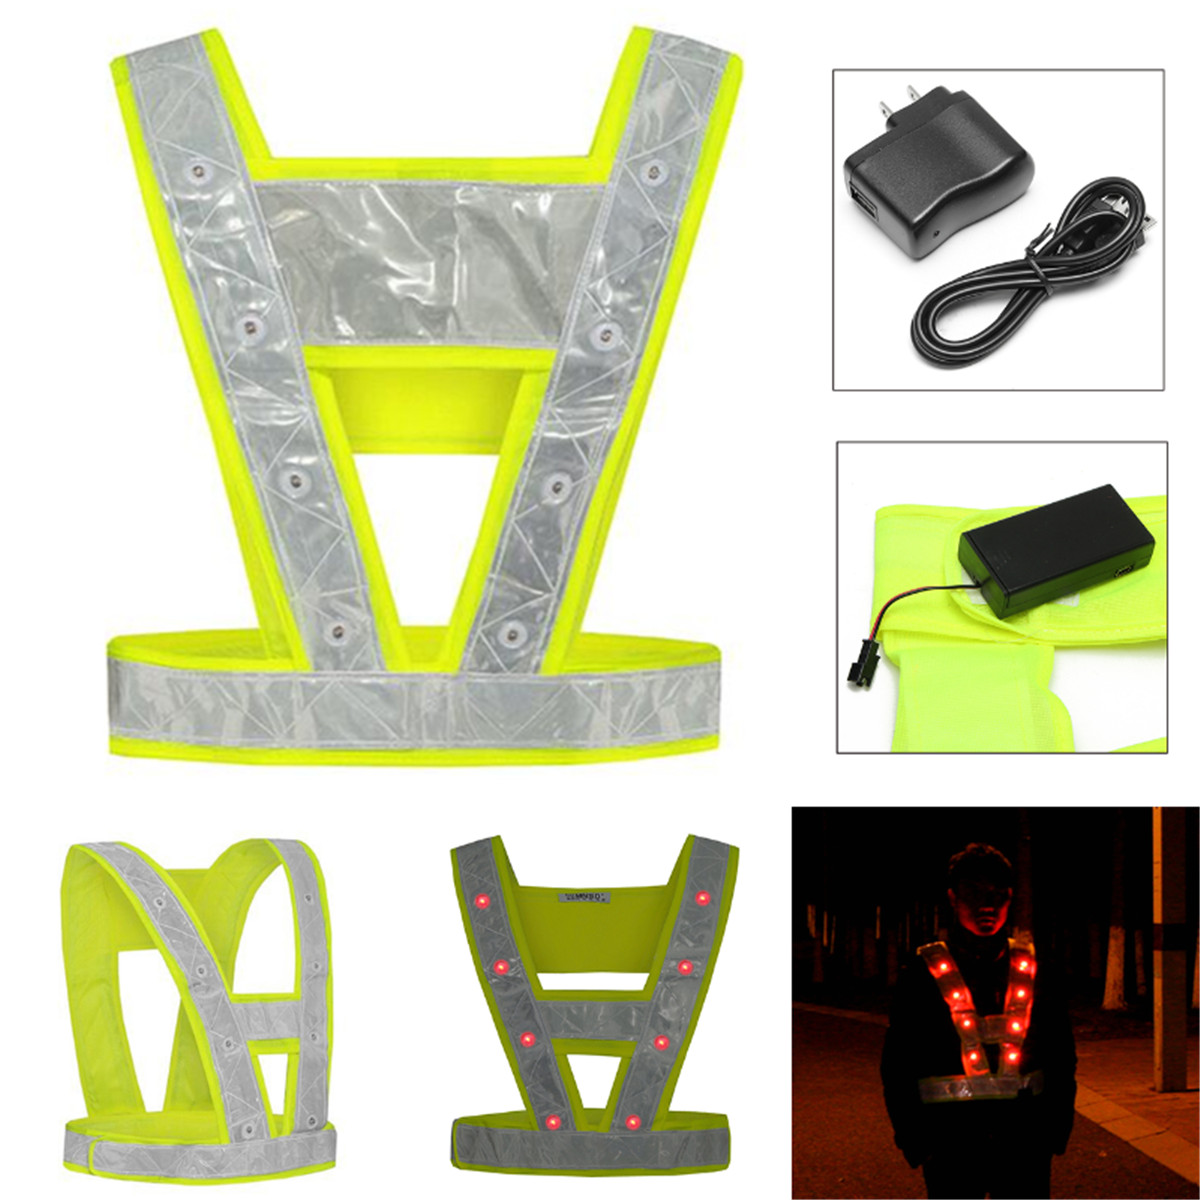 Cycling Running 16 LED Light Up Reflective Stripes Safety Vest High Visibility